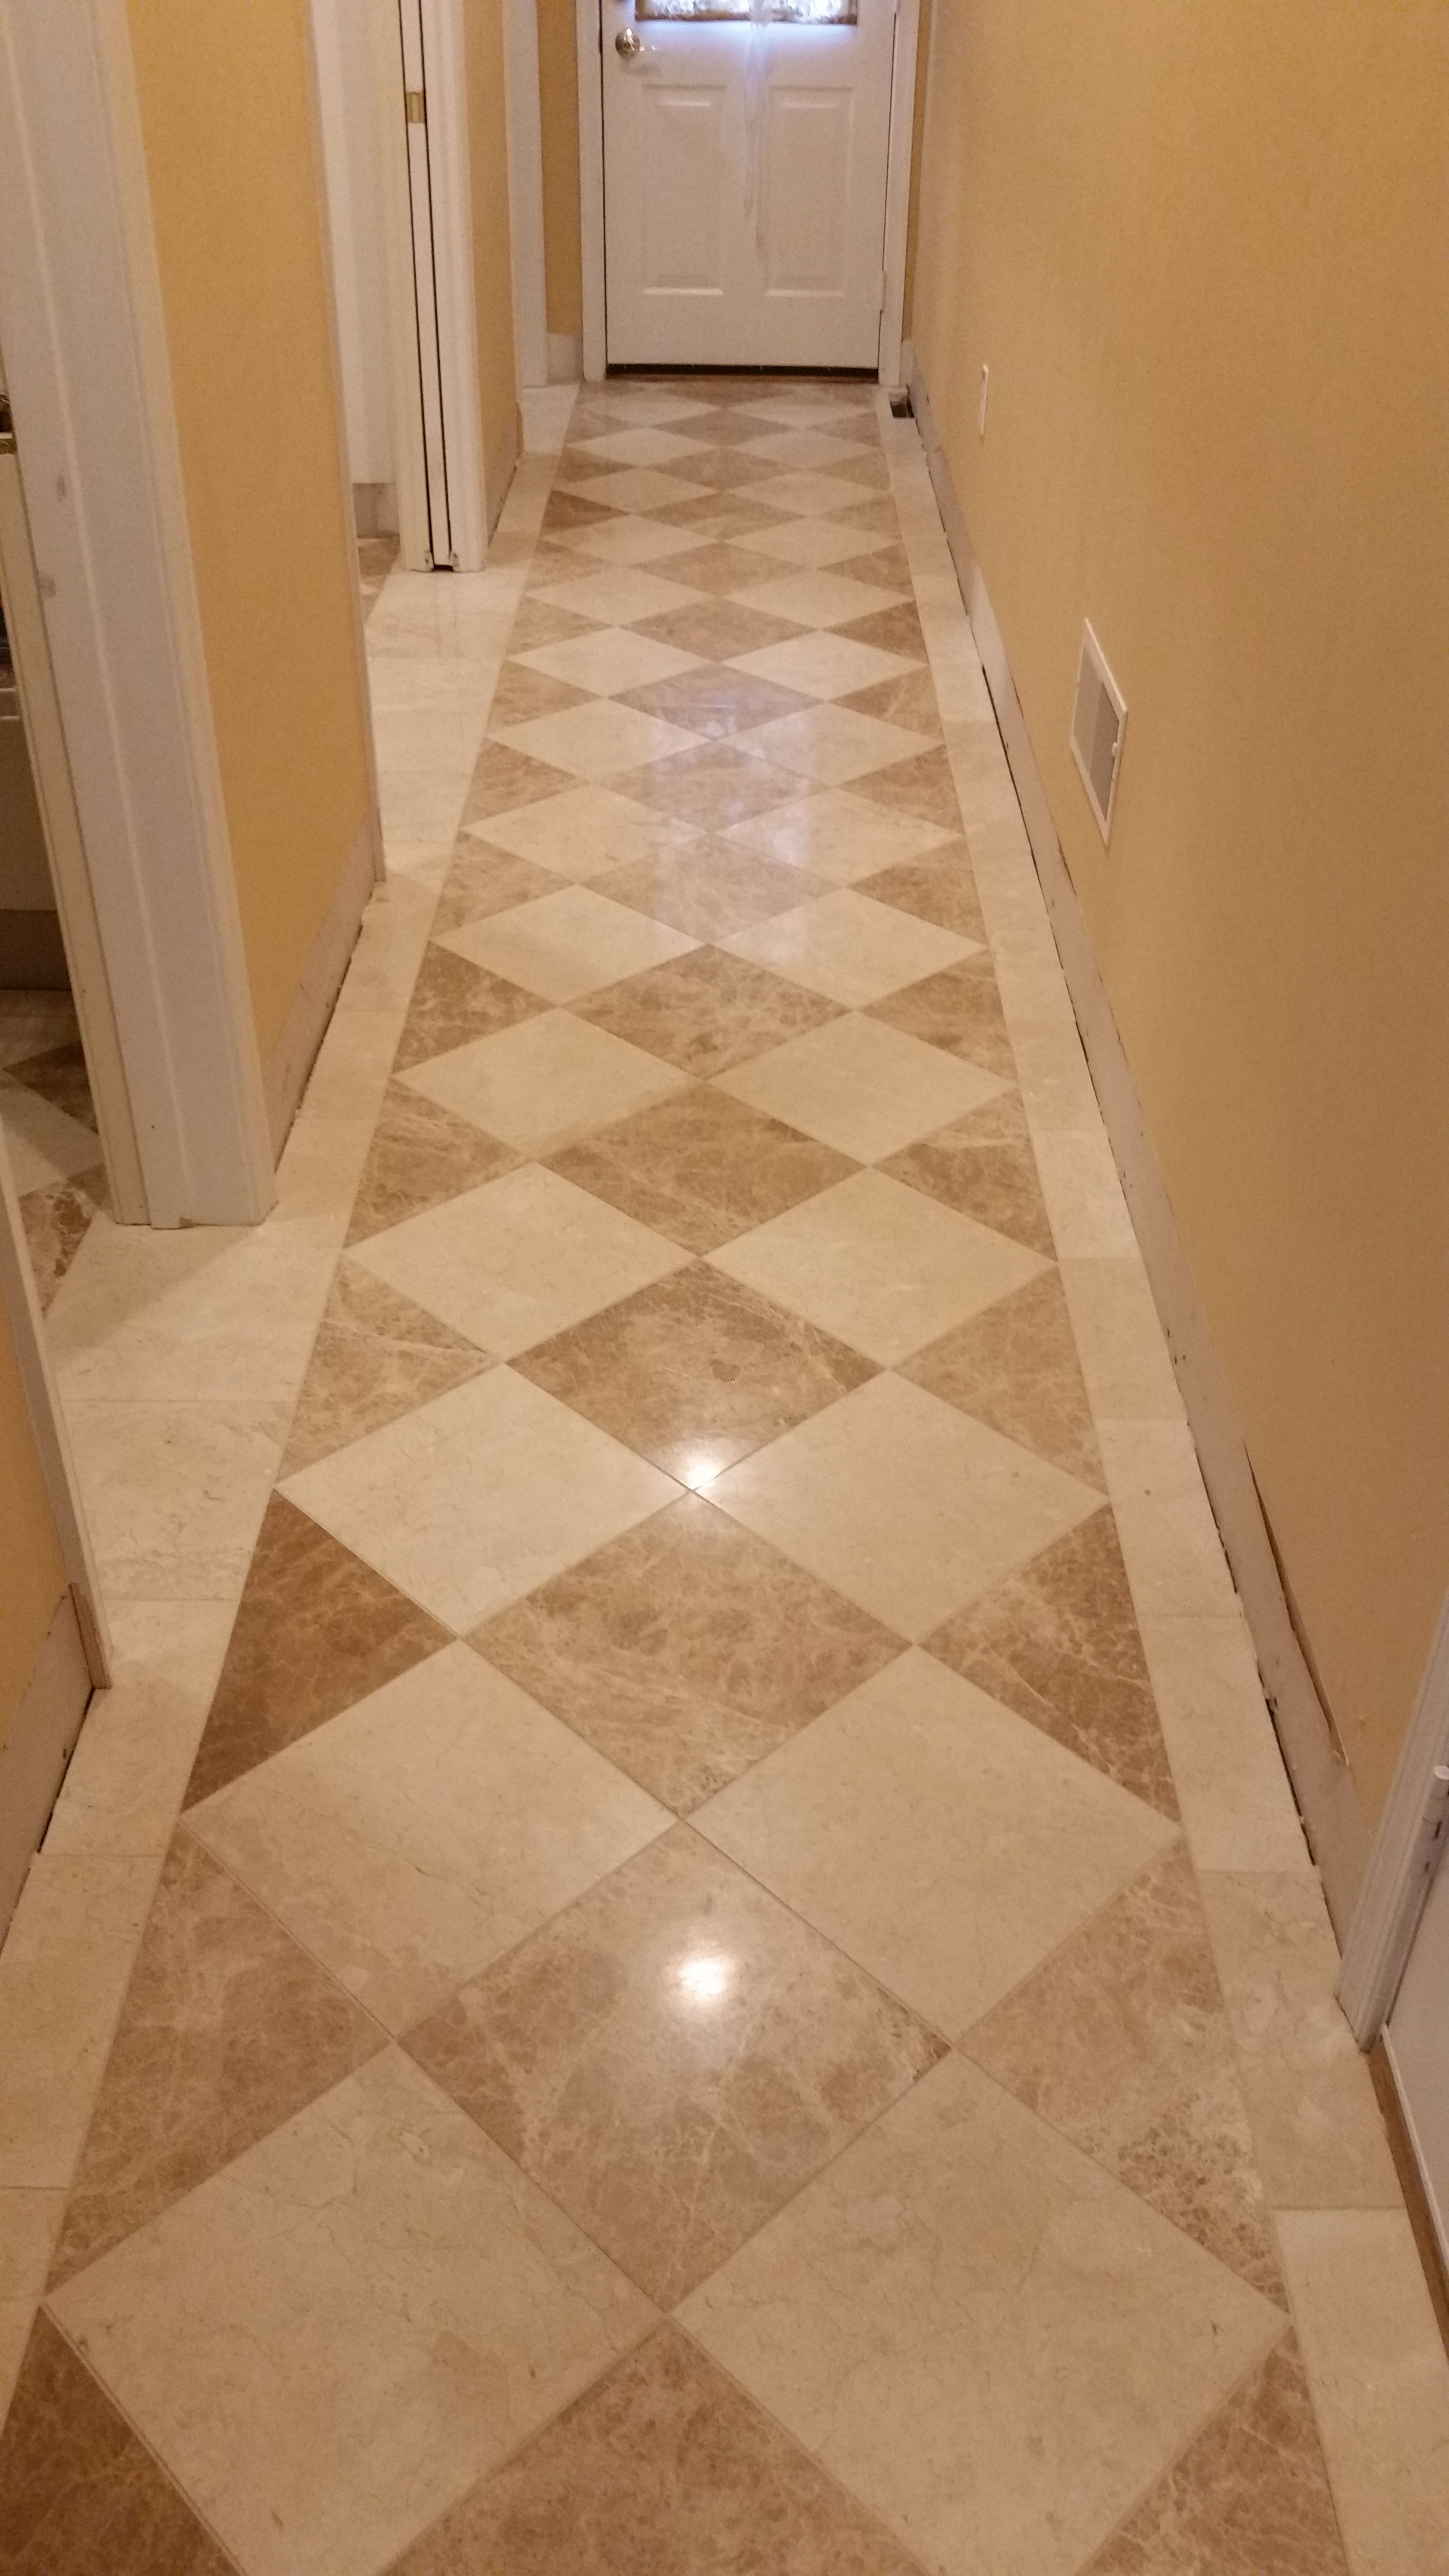 Flooring and installation from north hills flooring beautiful flooring and installation from north hills flooring beautiful ceramic tile in a hallway crema dailygadgetfo Image collections